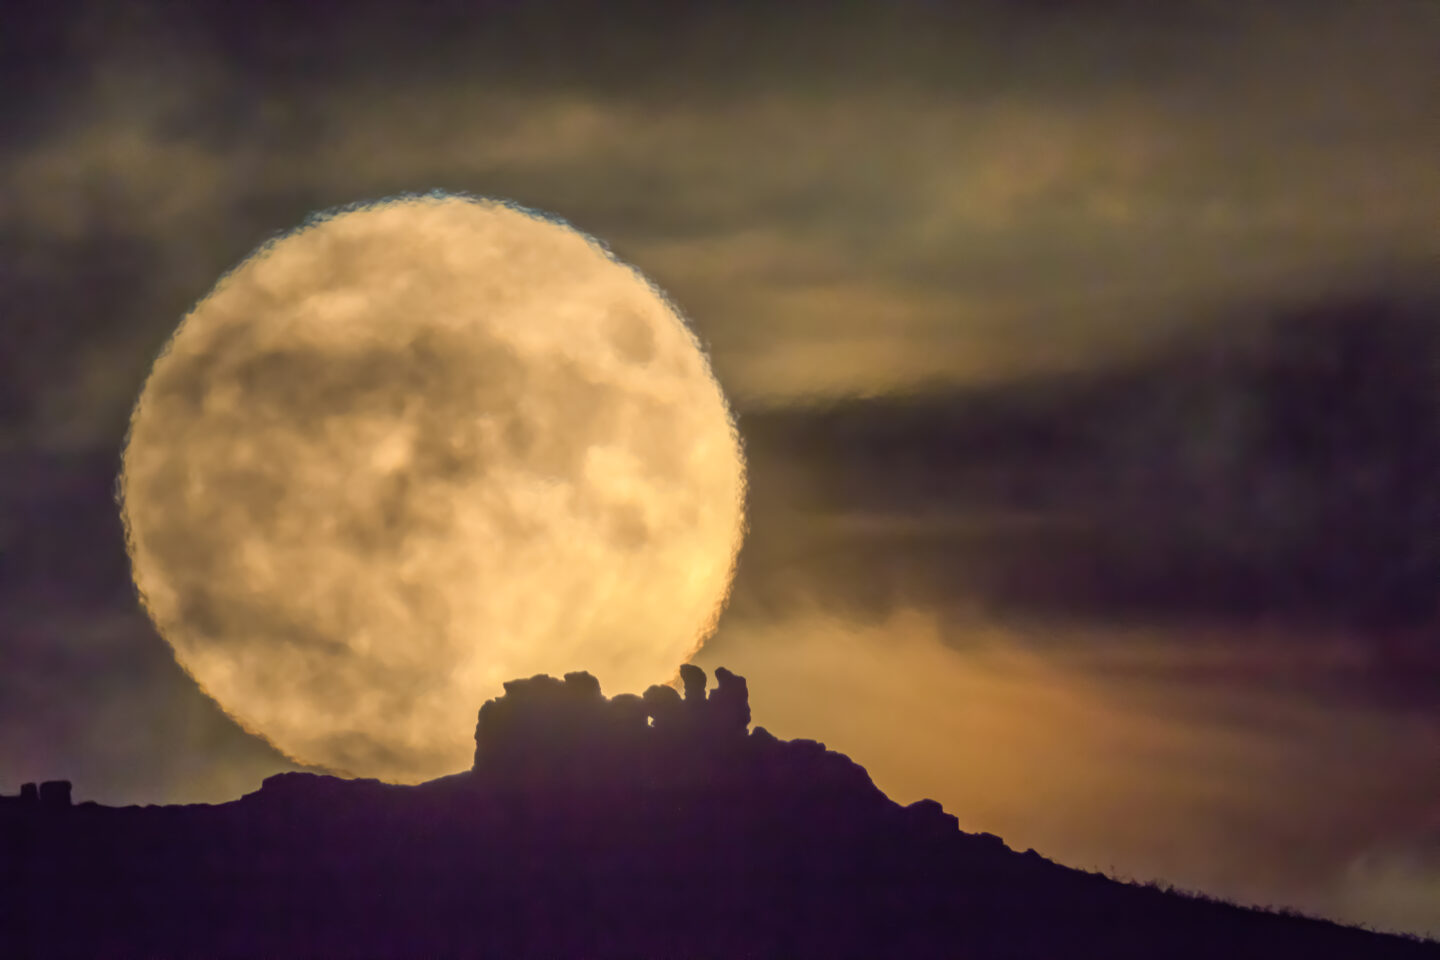 Supermoon over Three Fingers Rock, Caer Caradoc, Shropshire, UK (The Times cover photo)